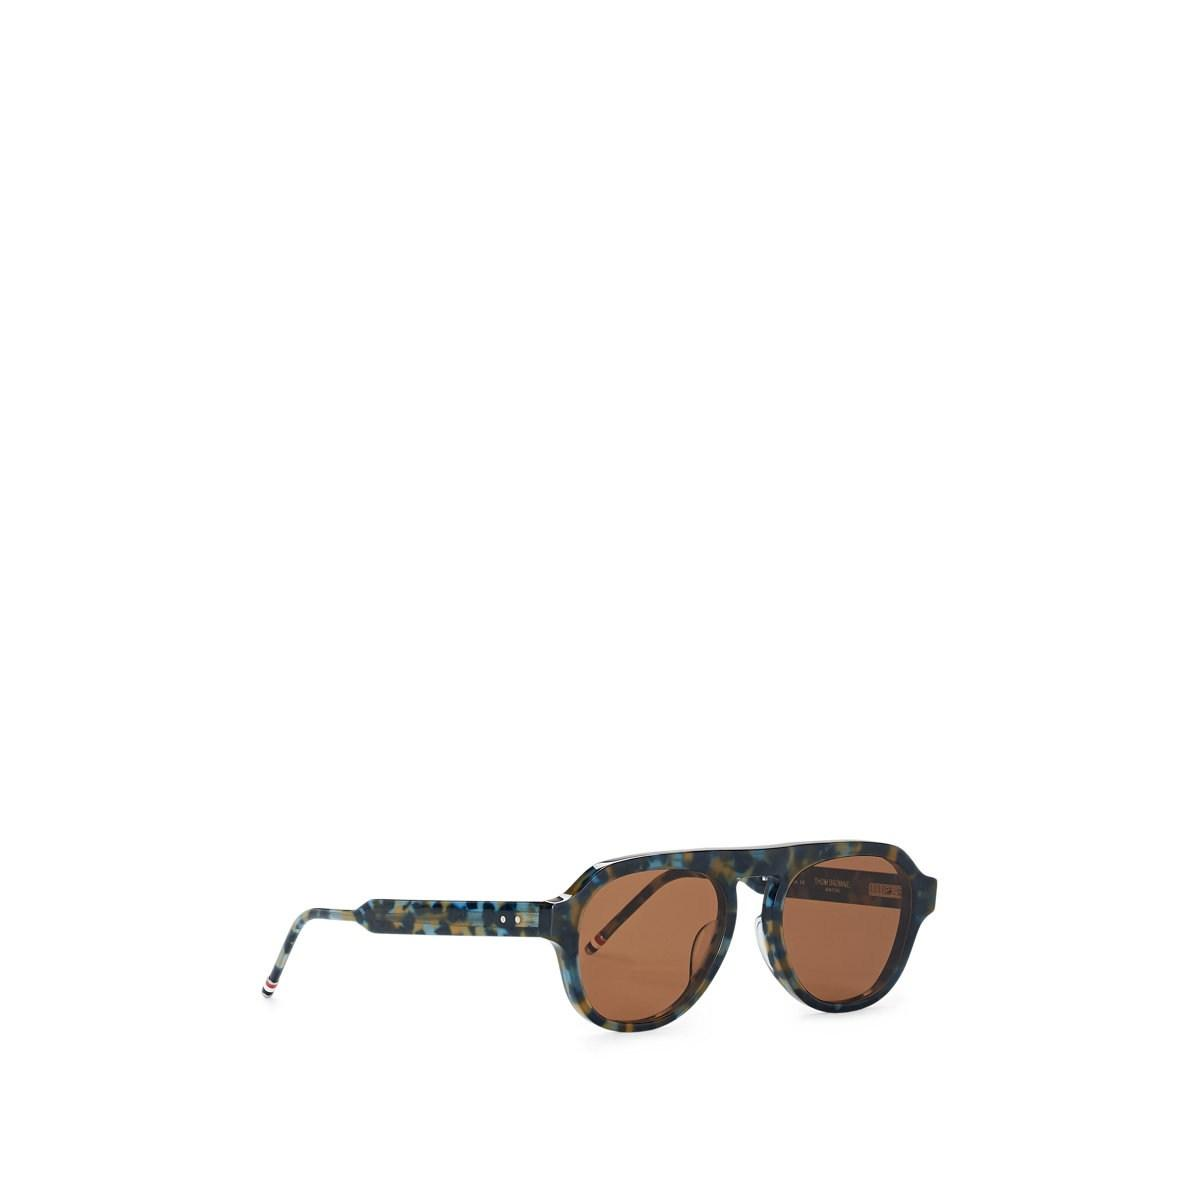 b71bf44657f85 Lyst - Thom Browne Tb-416 Sunglasses in Brown for Men